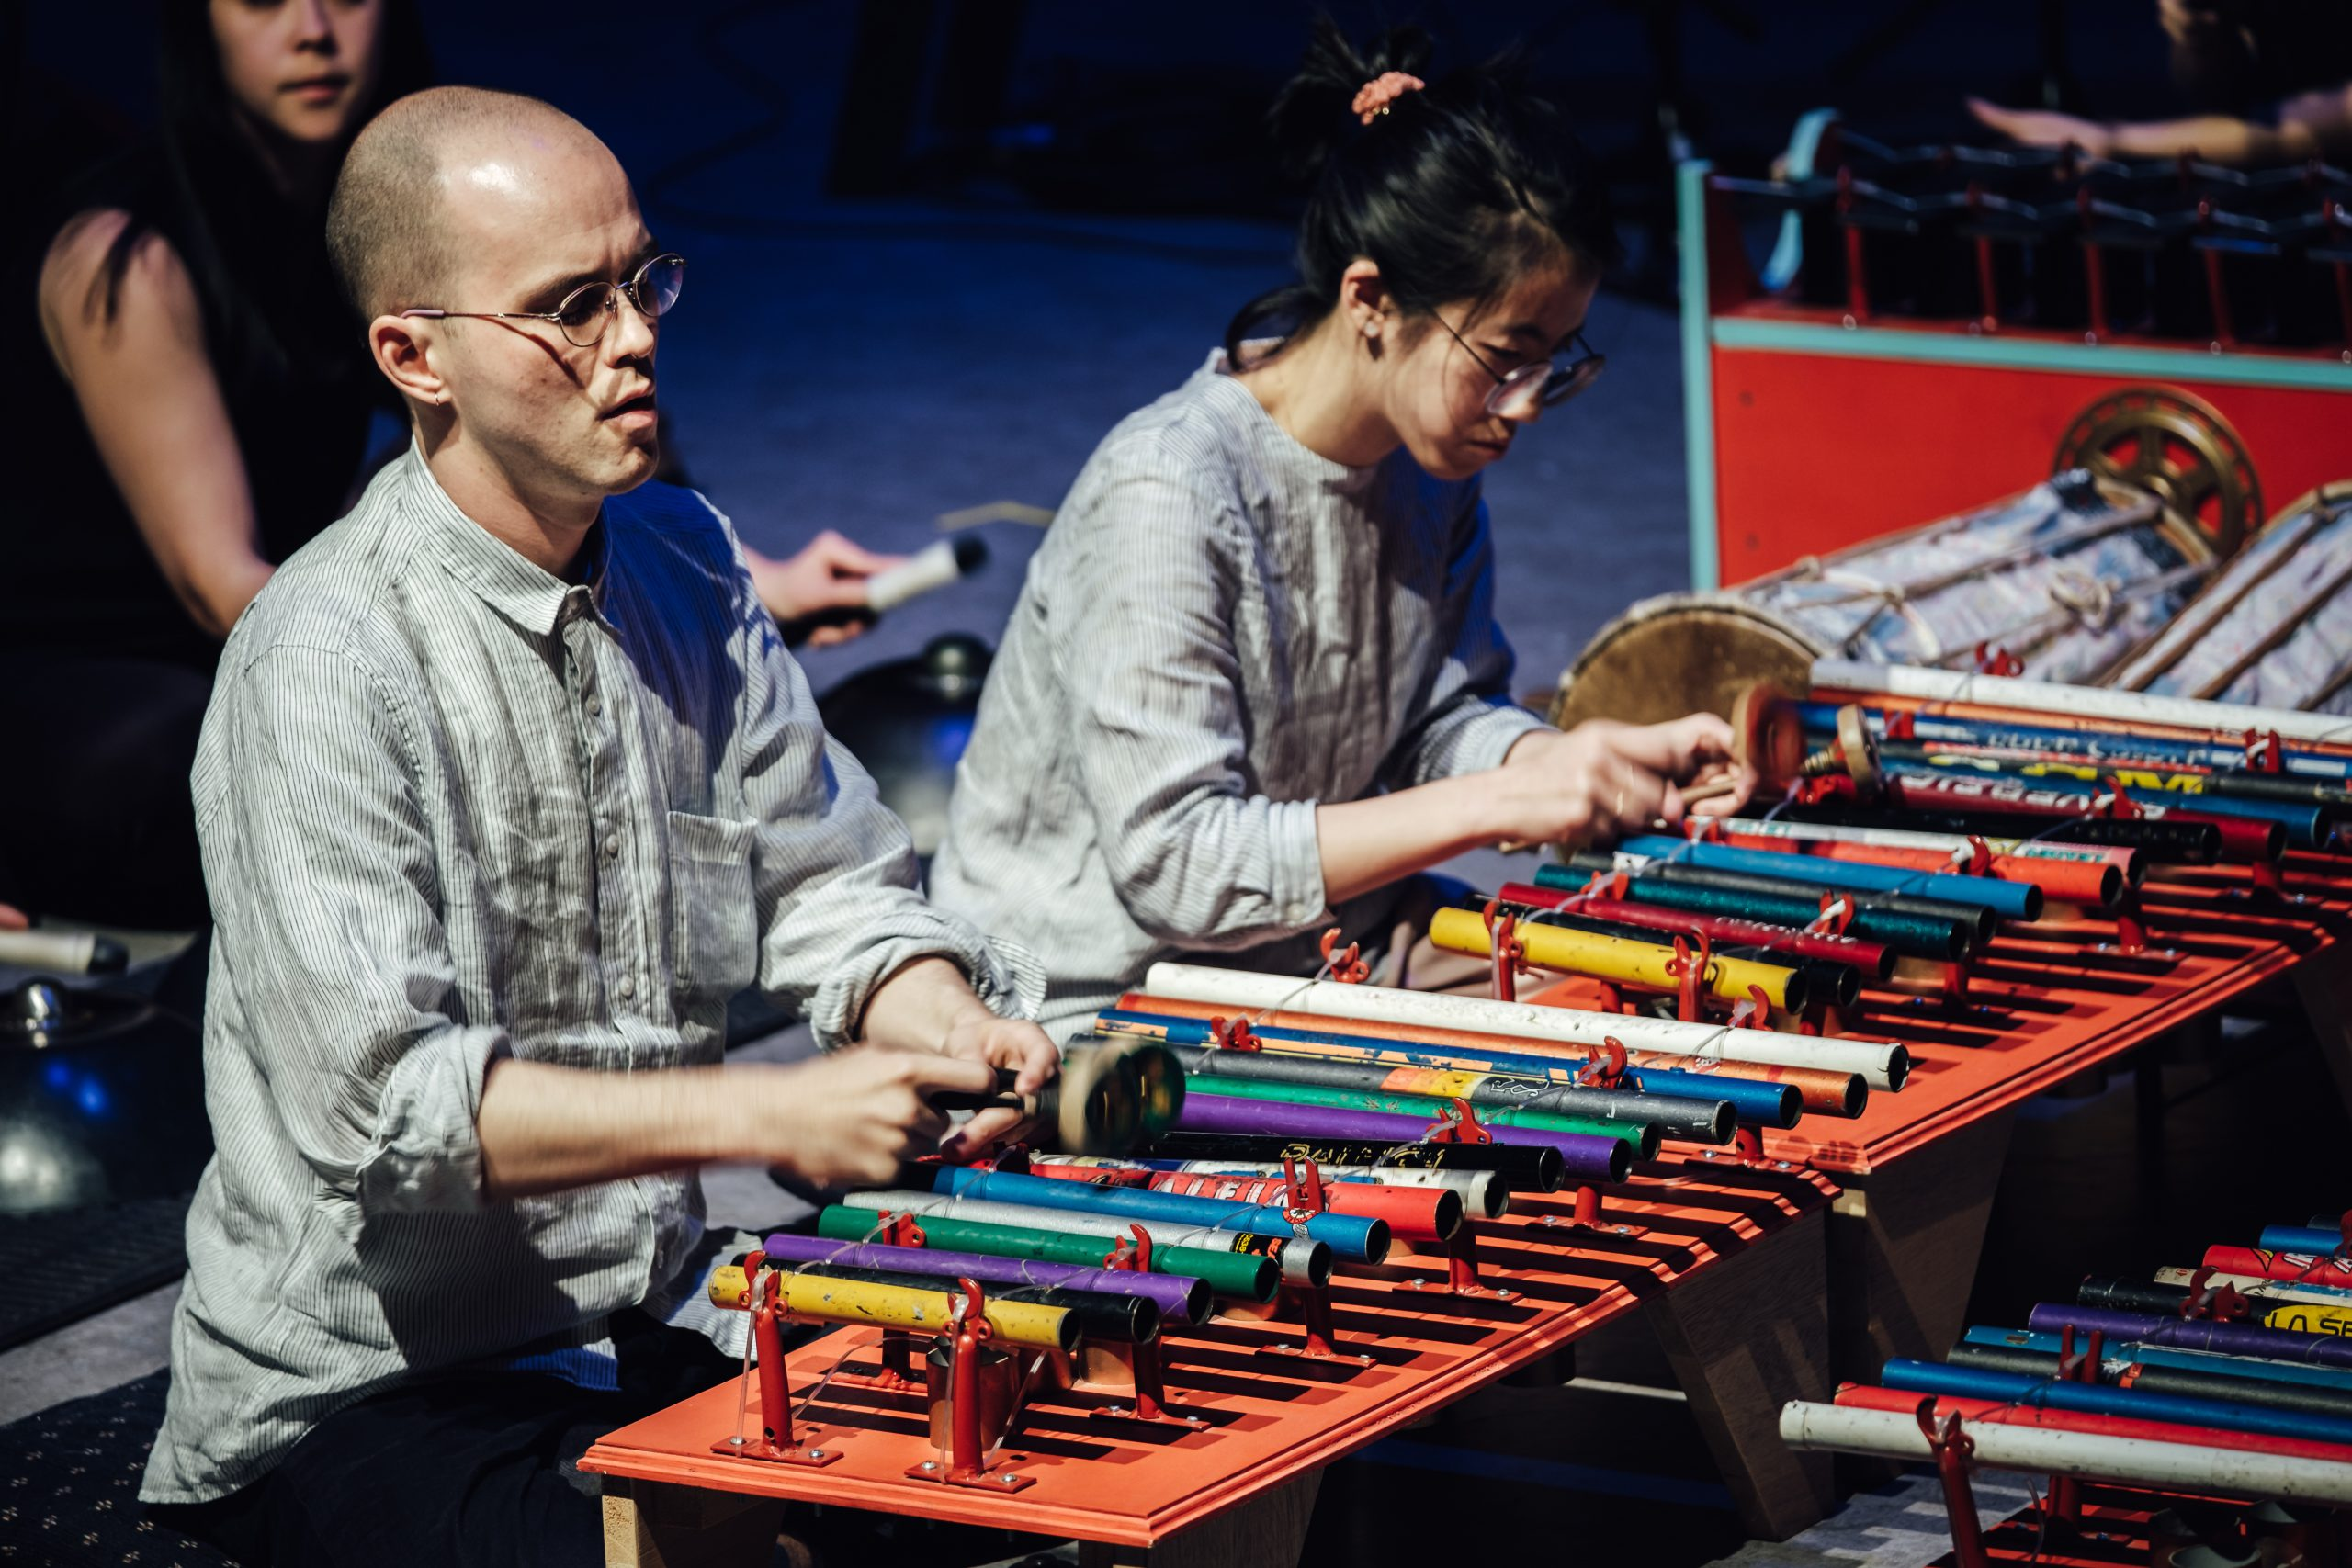 Copy of Gamelan Bike Bike - Photo by Yohei Shimomae-7